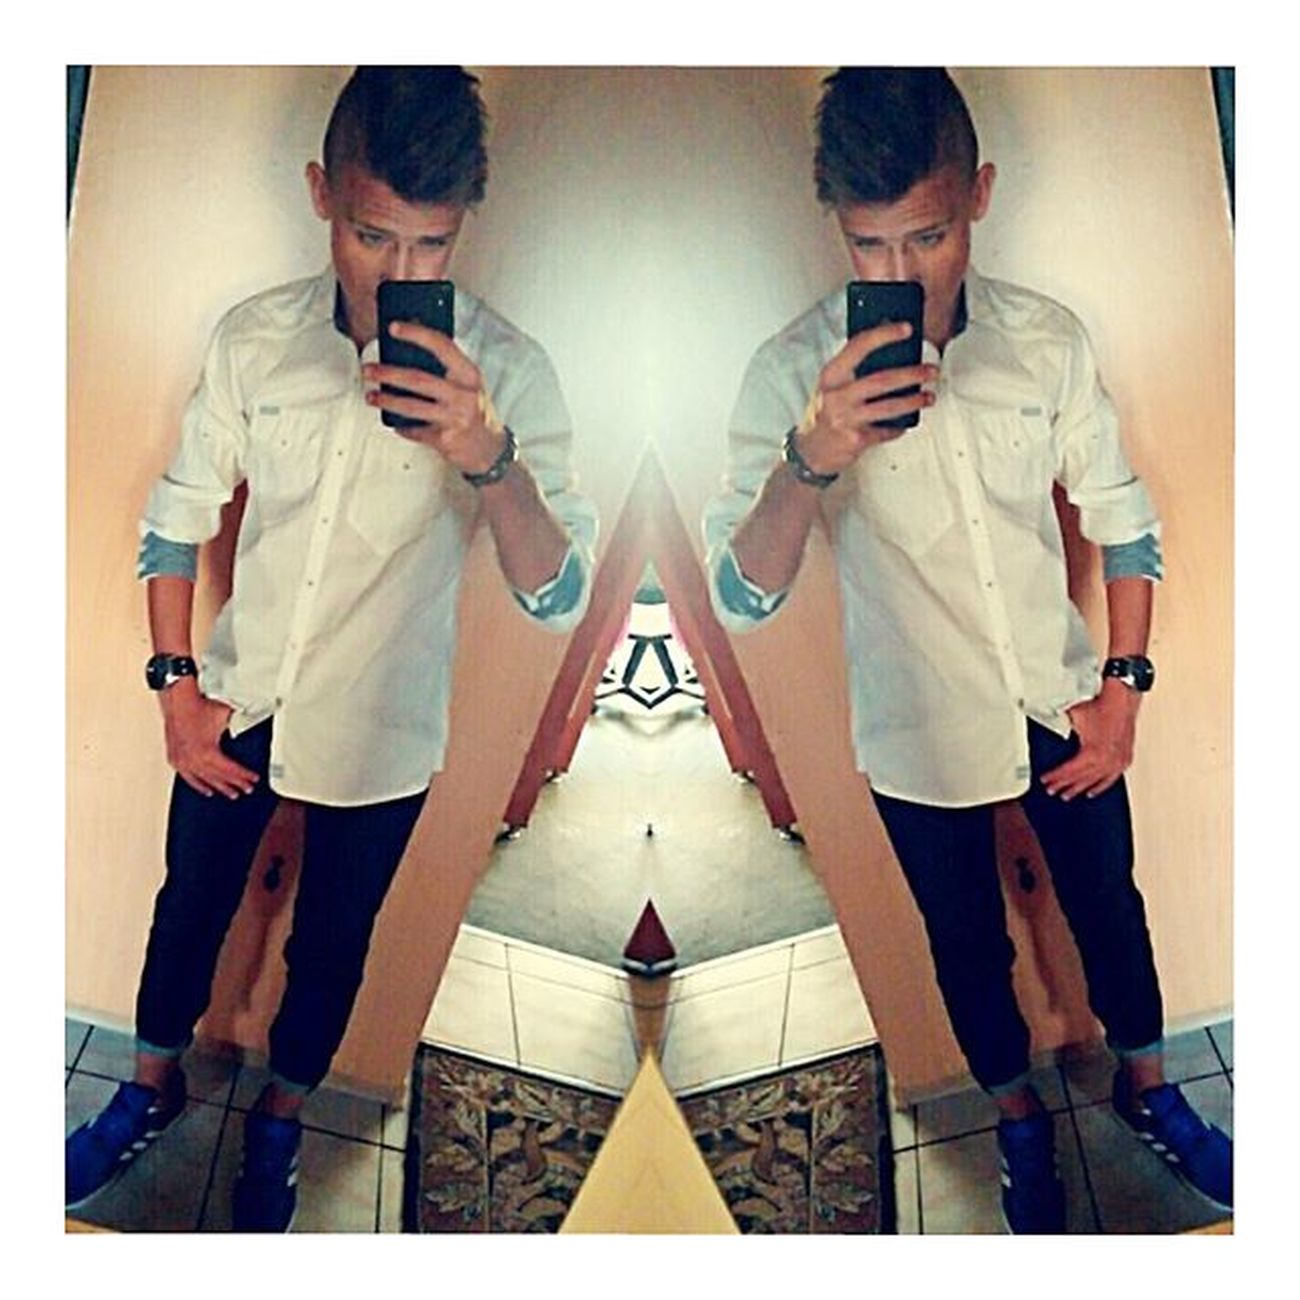 Oldpic Oldphoto Stare Zdjatkooo Polishboy  Insy Getlikes Getfollowers Like4like Followers24 Jutro Odwiedzimy Szkoła ✅❌👉⏩🌠👌